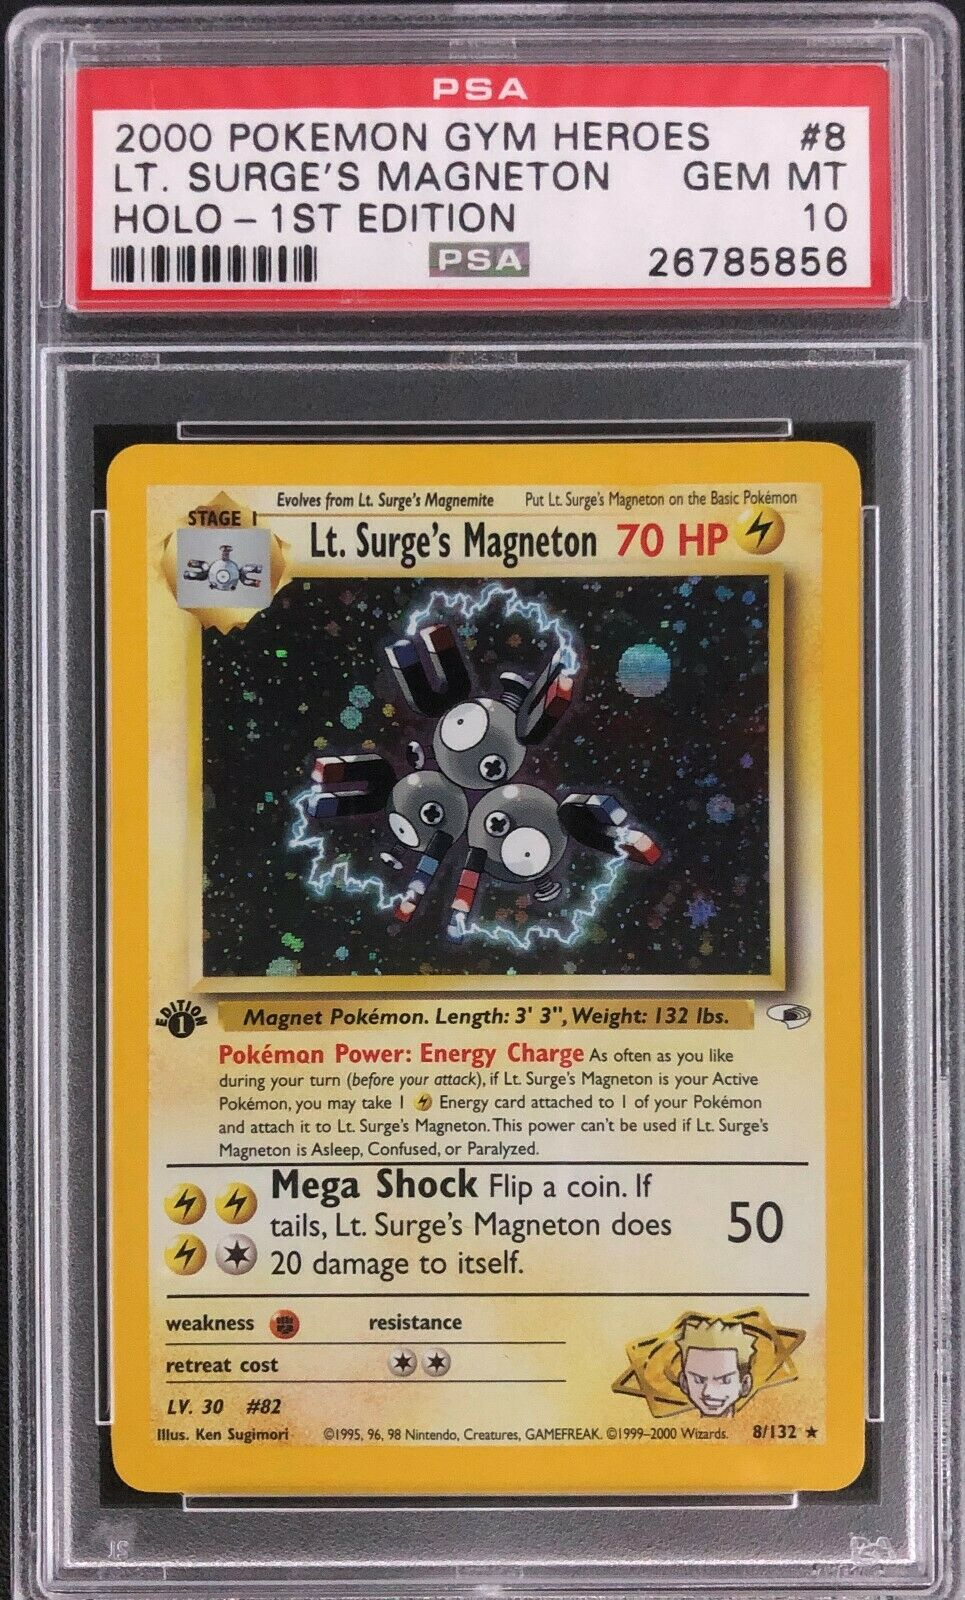 1st Edition Gym Heroes Lt Surges Magneton Holo Pokemon Card Mint PSA 10